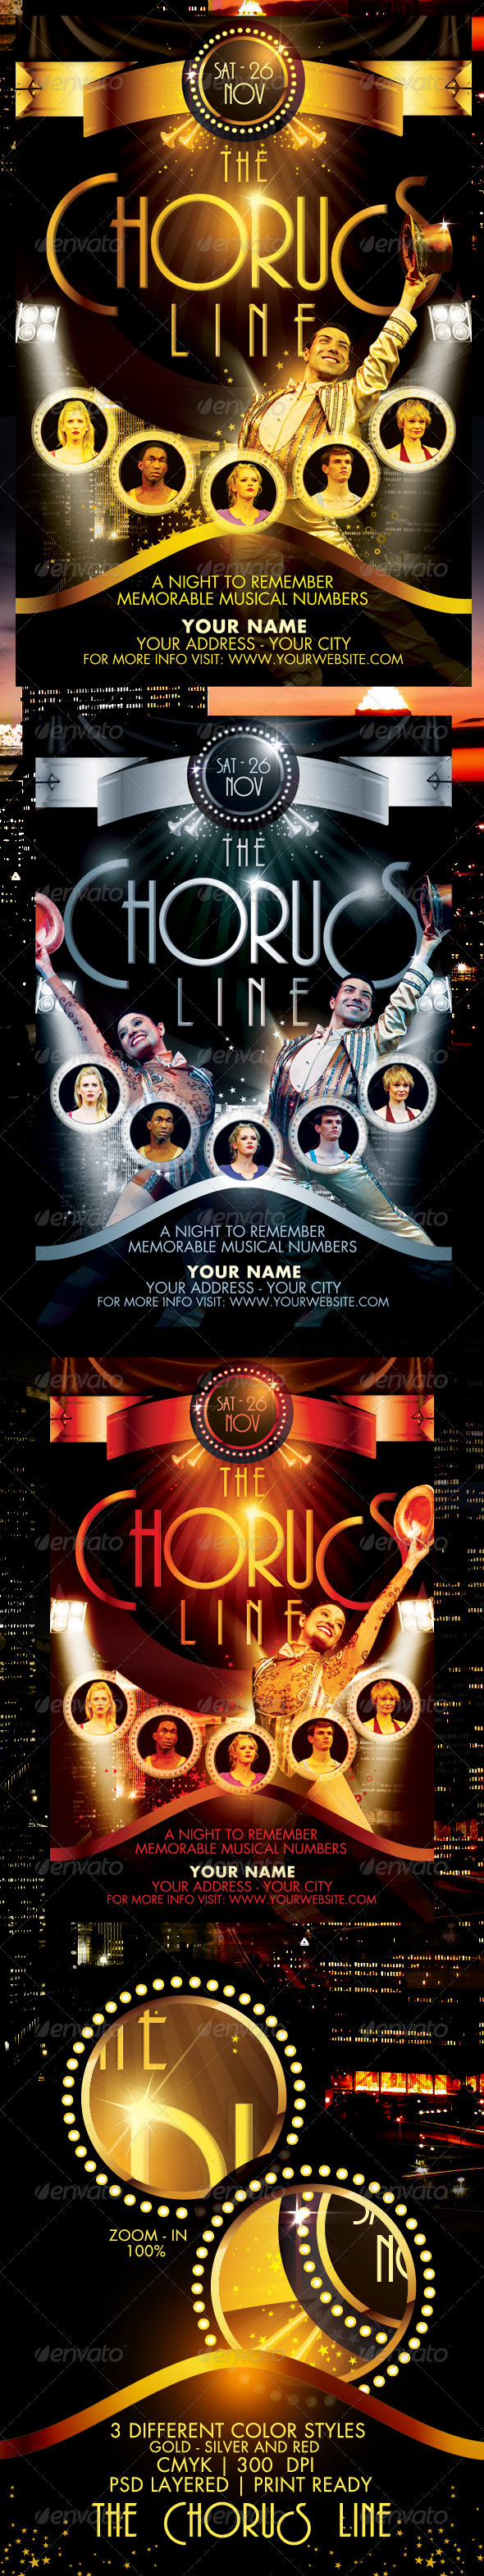 The Chorus Line Flyer Template - Clubs & Parties Events